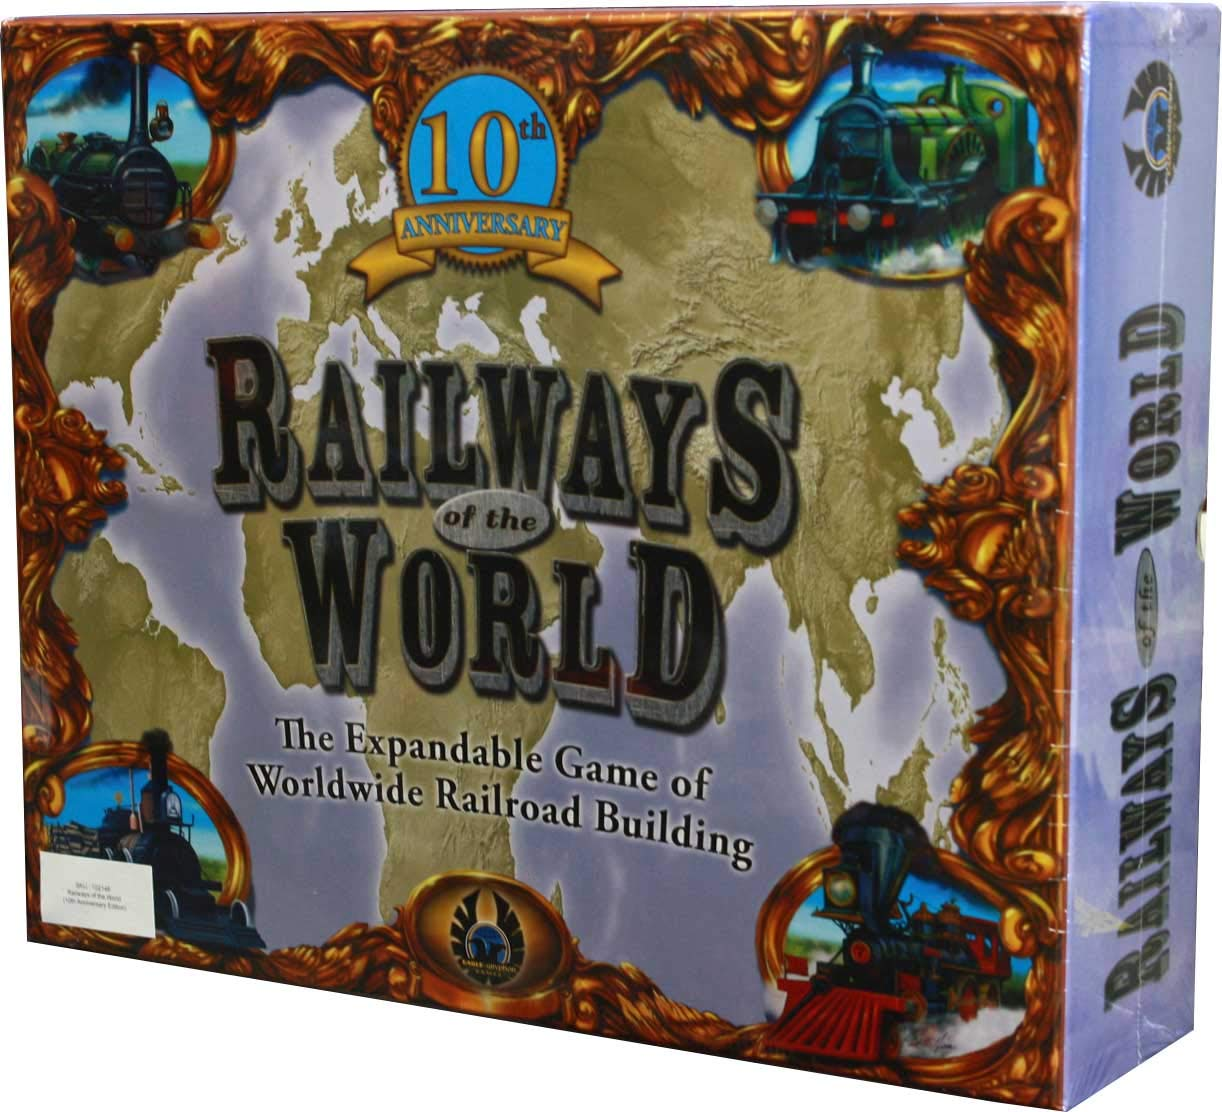 moda Eagle Railways of of of the World (10th Anniversary)  distribución global